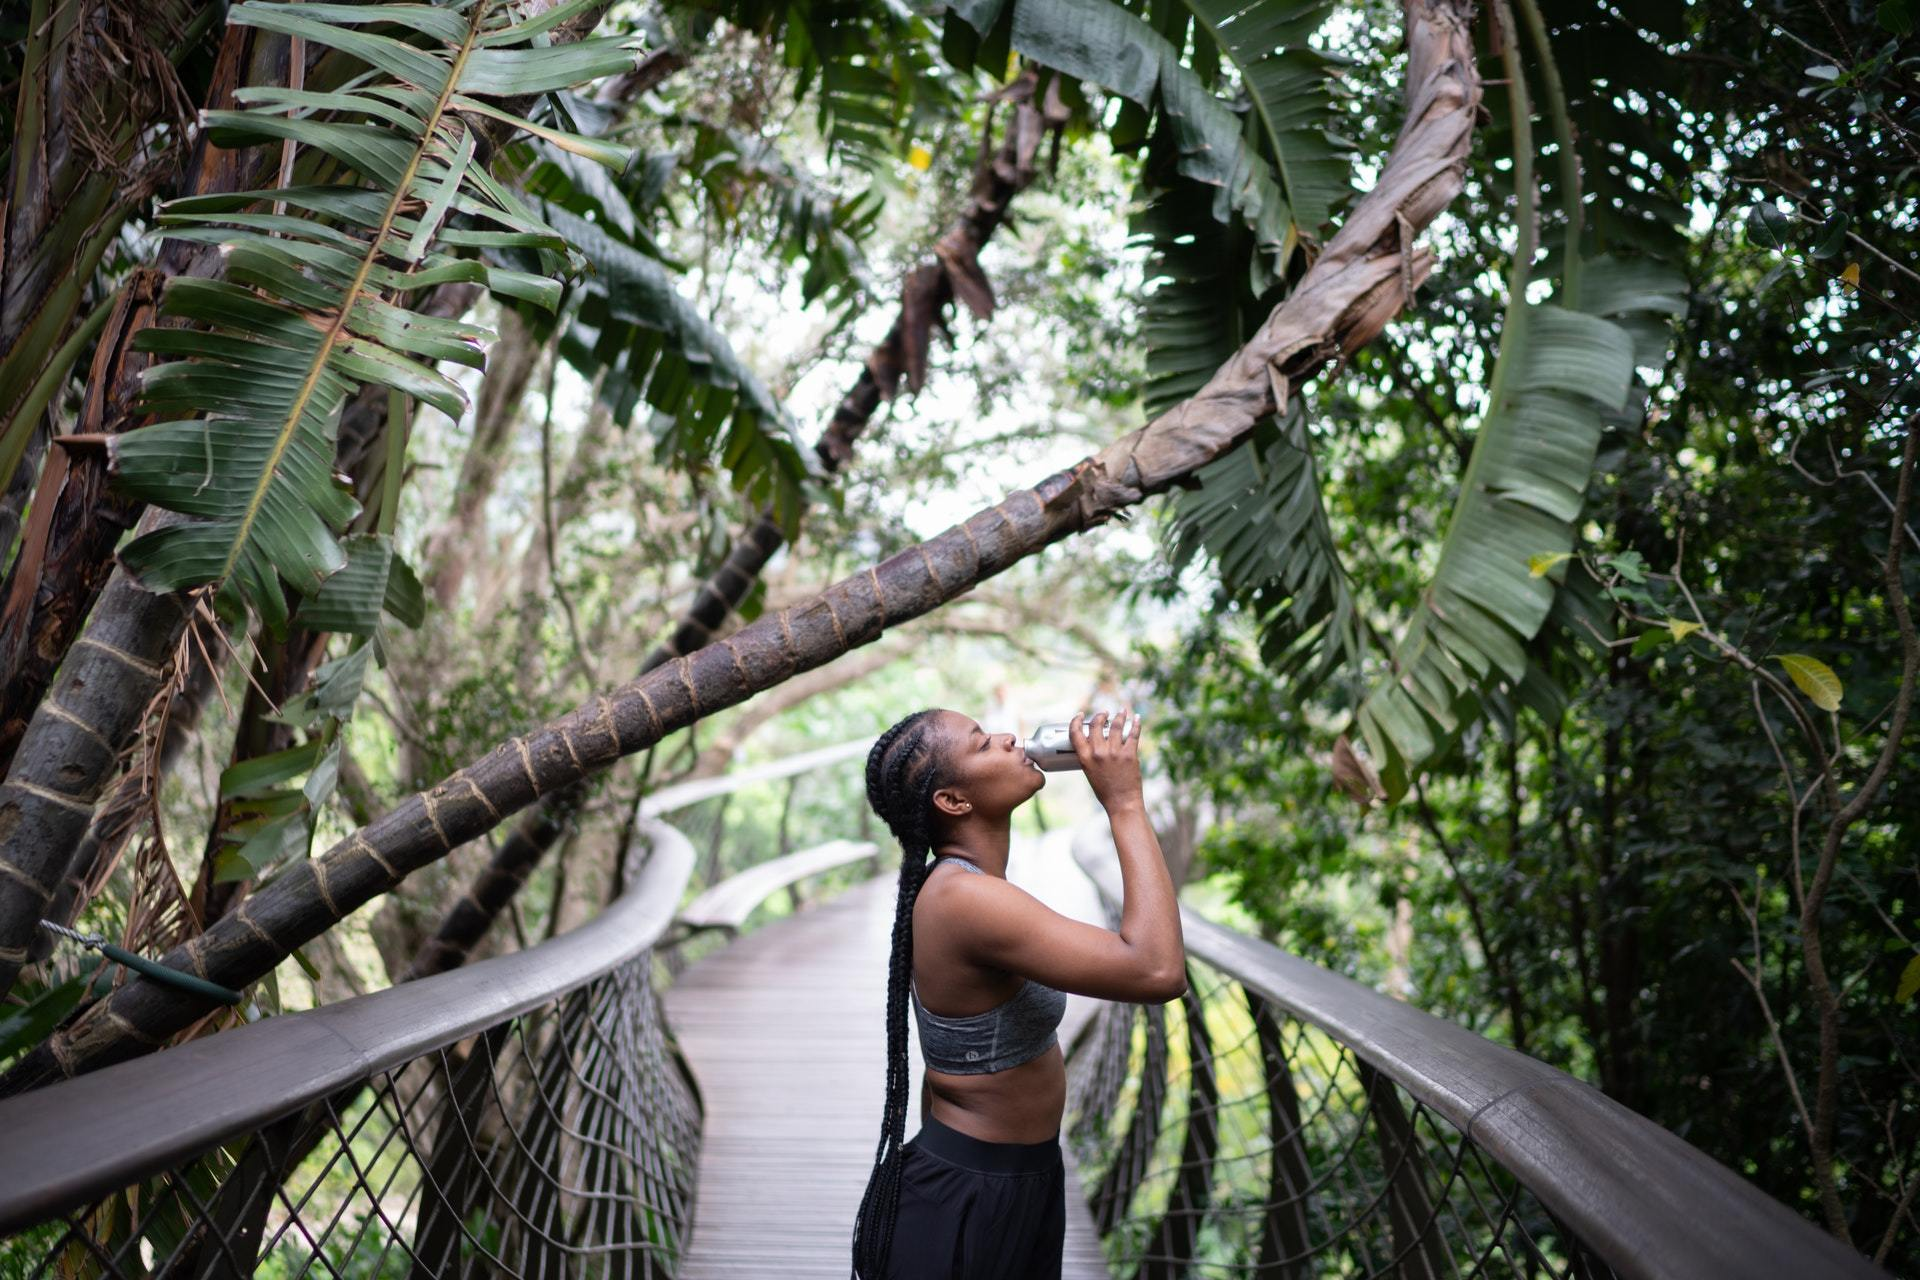 a woman drinking from a protein shaker bottle in the forest